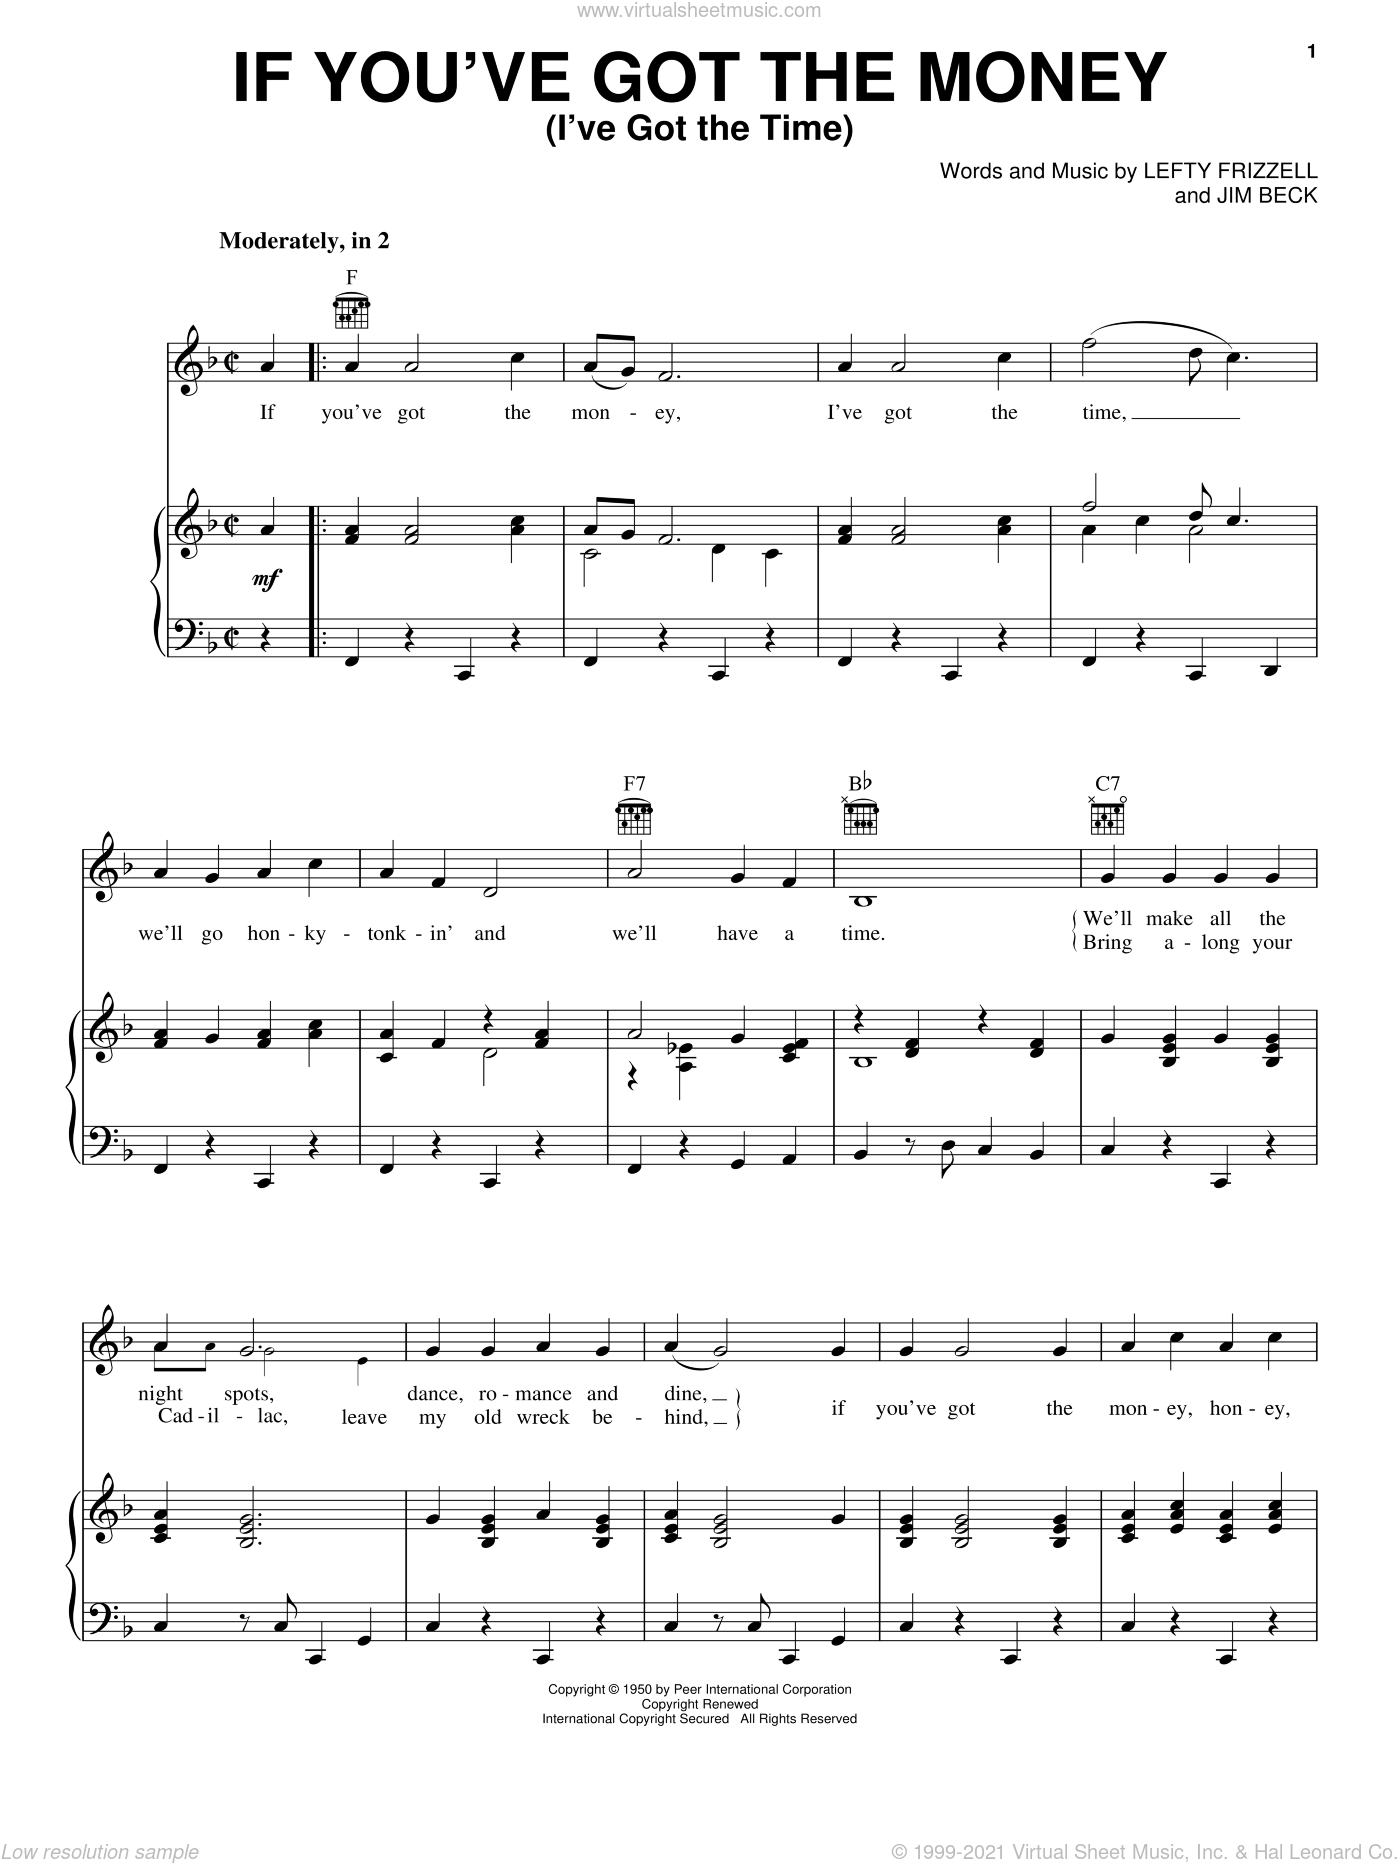 If You've Got The Money (I've Got The Time) sheet music for voice, piano or guitar by Jim Beck